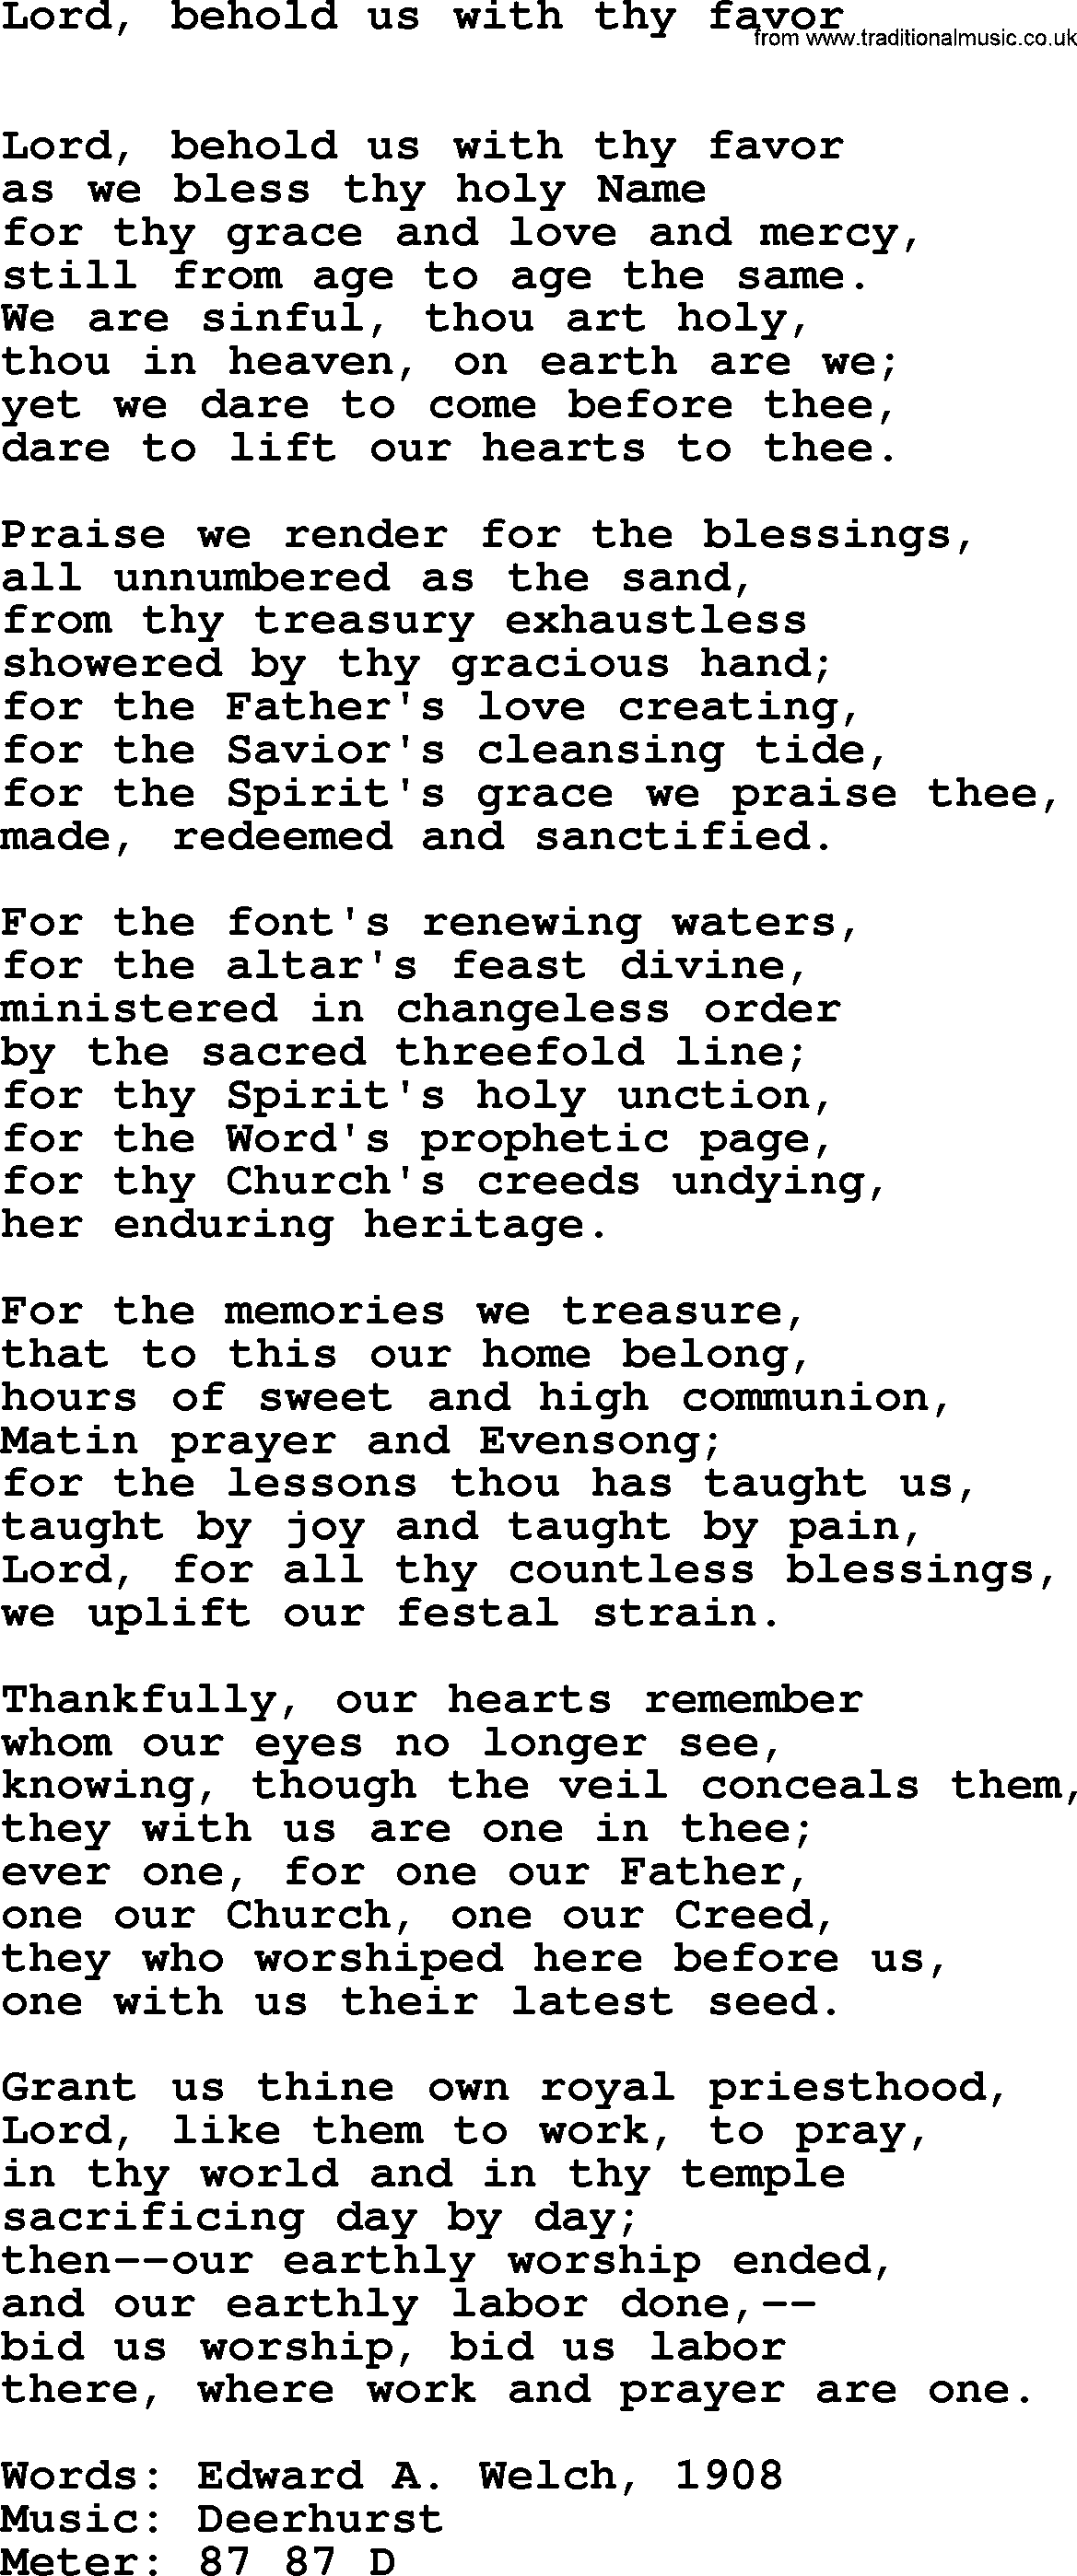 Book of Common Praise Song: Lord, Behold Us With Thy Favor